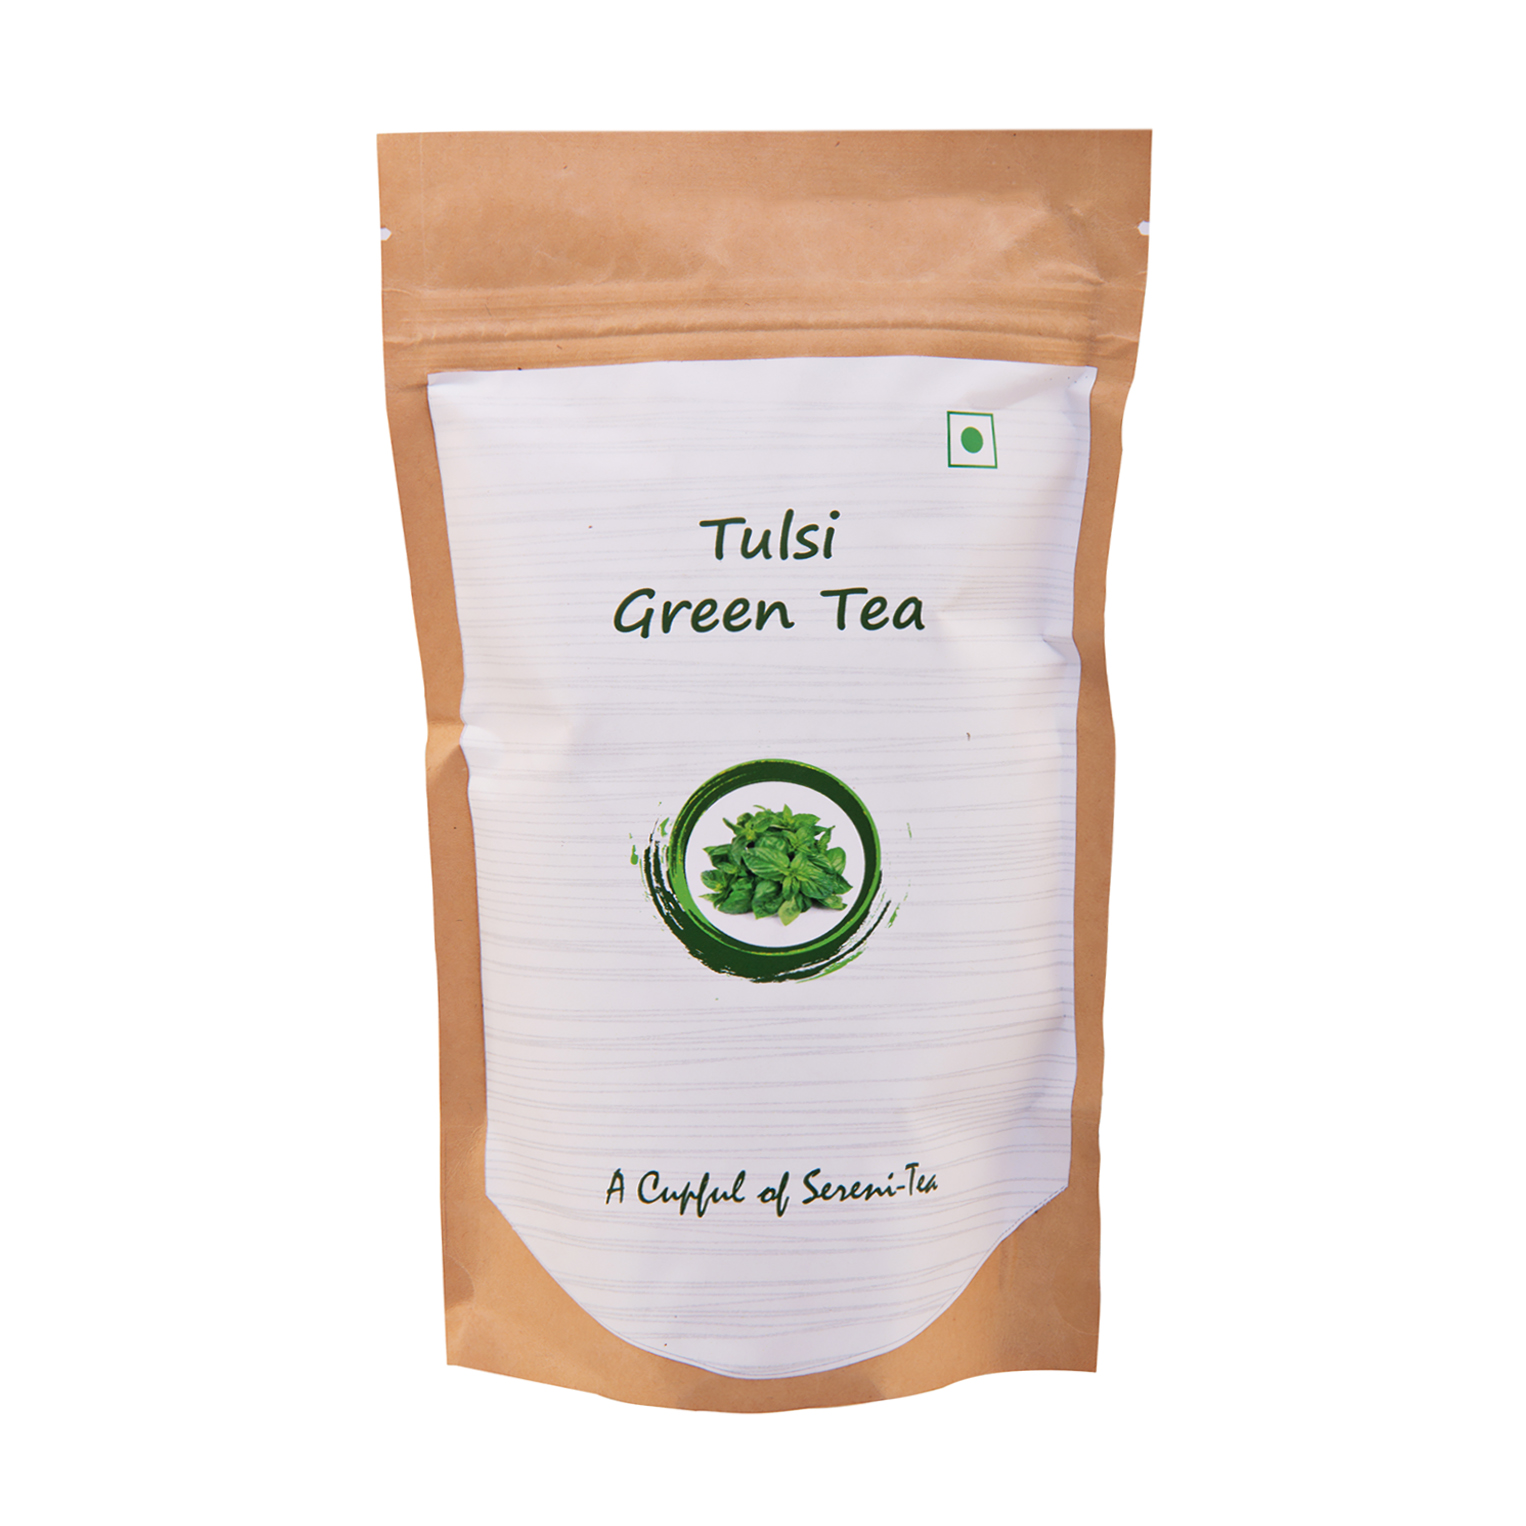 https://www.chaiwalah.in/catalog_images/product/85/CT-Tulsi-GRN.jpg